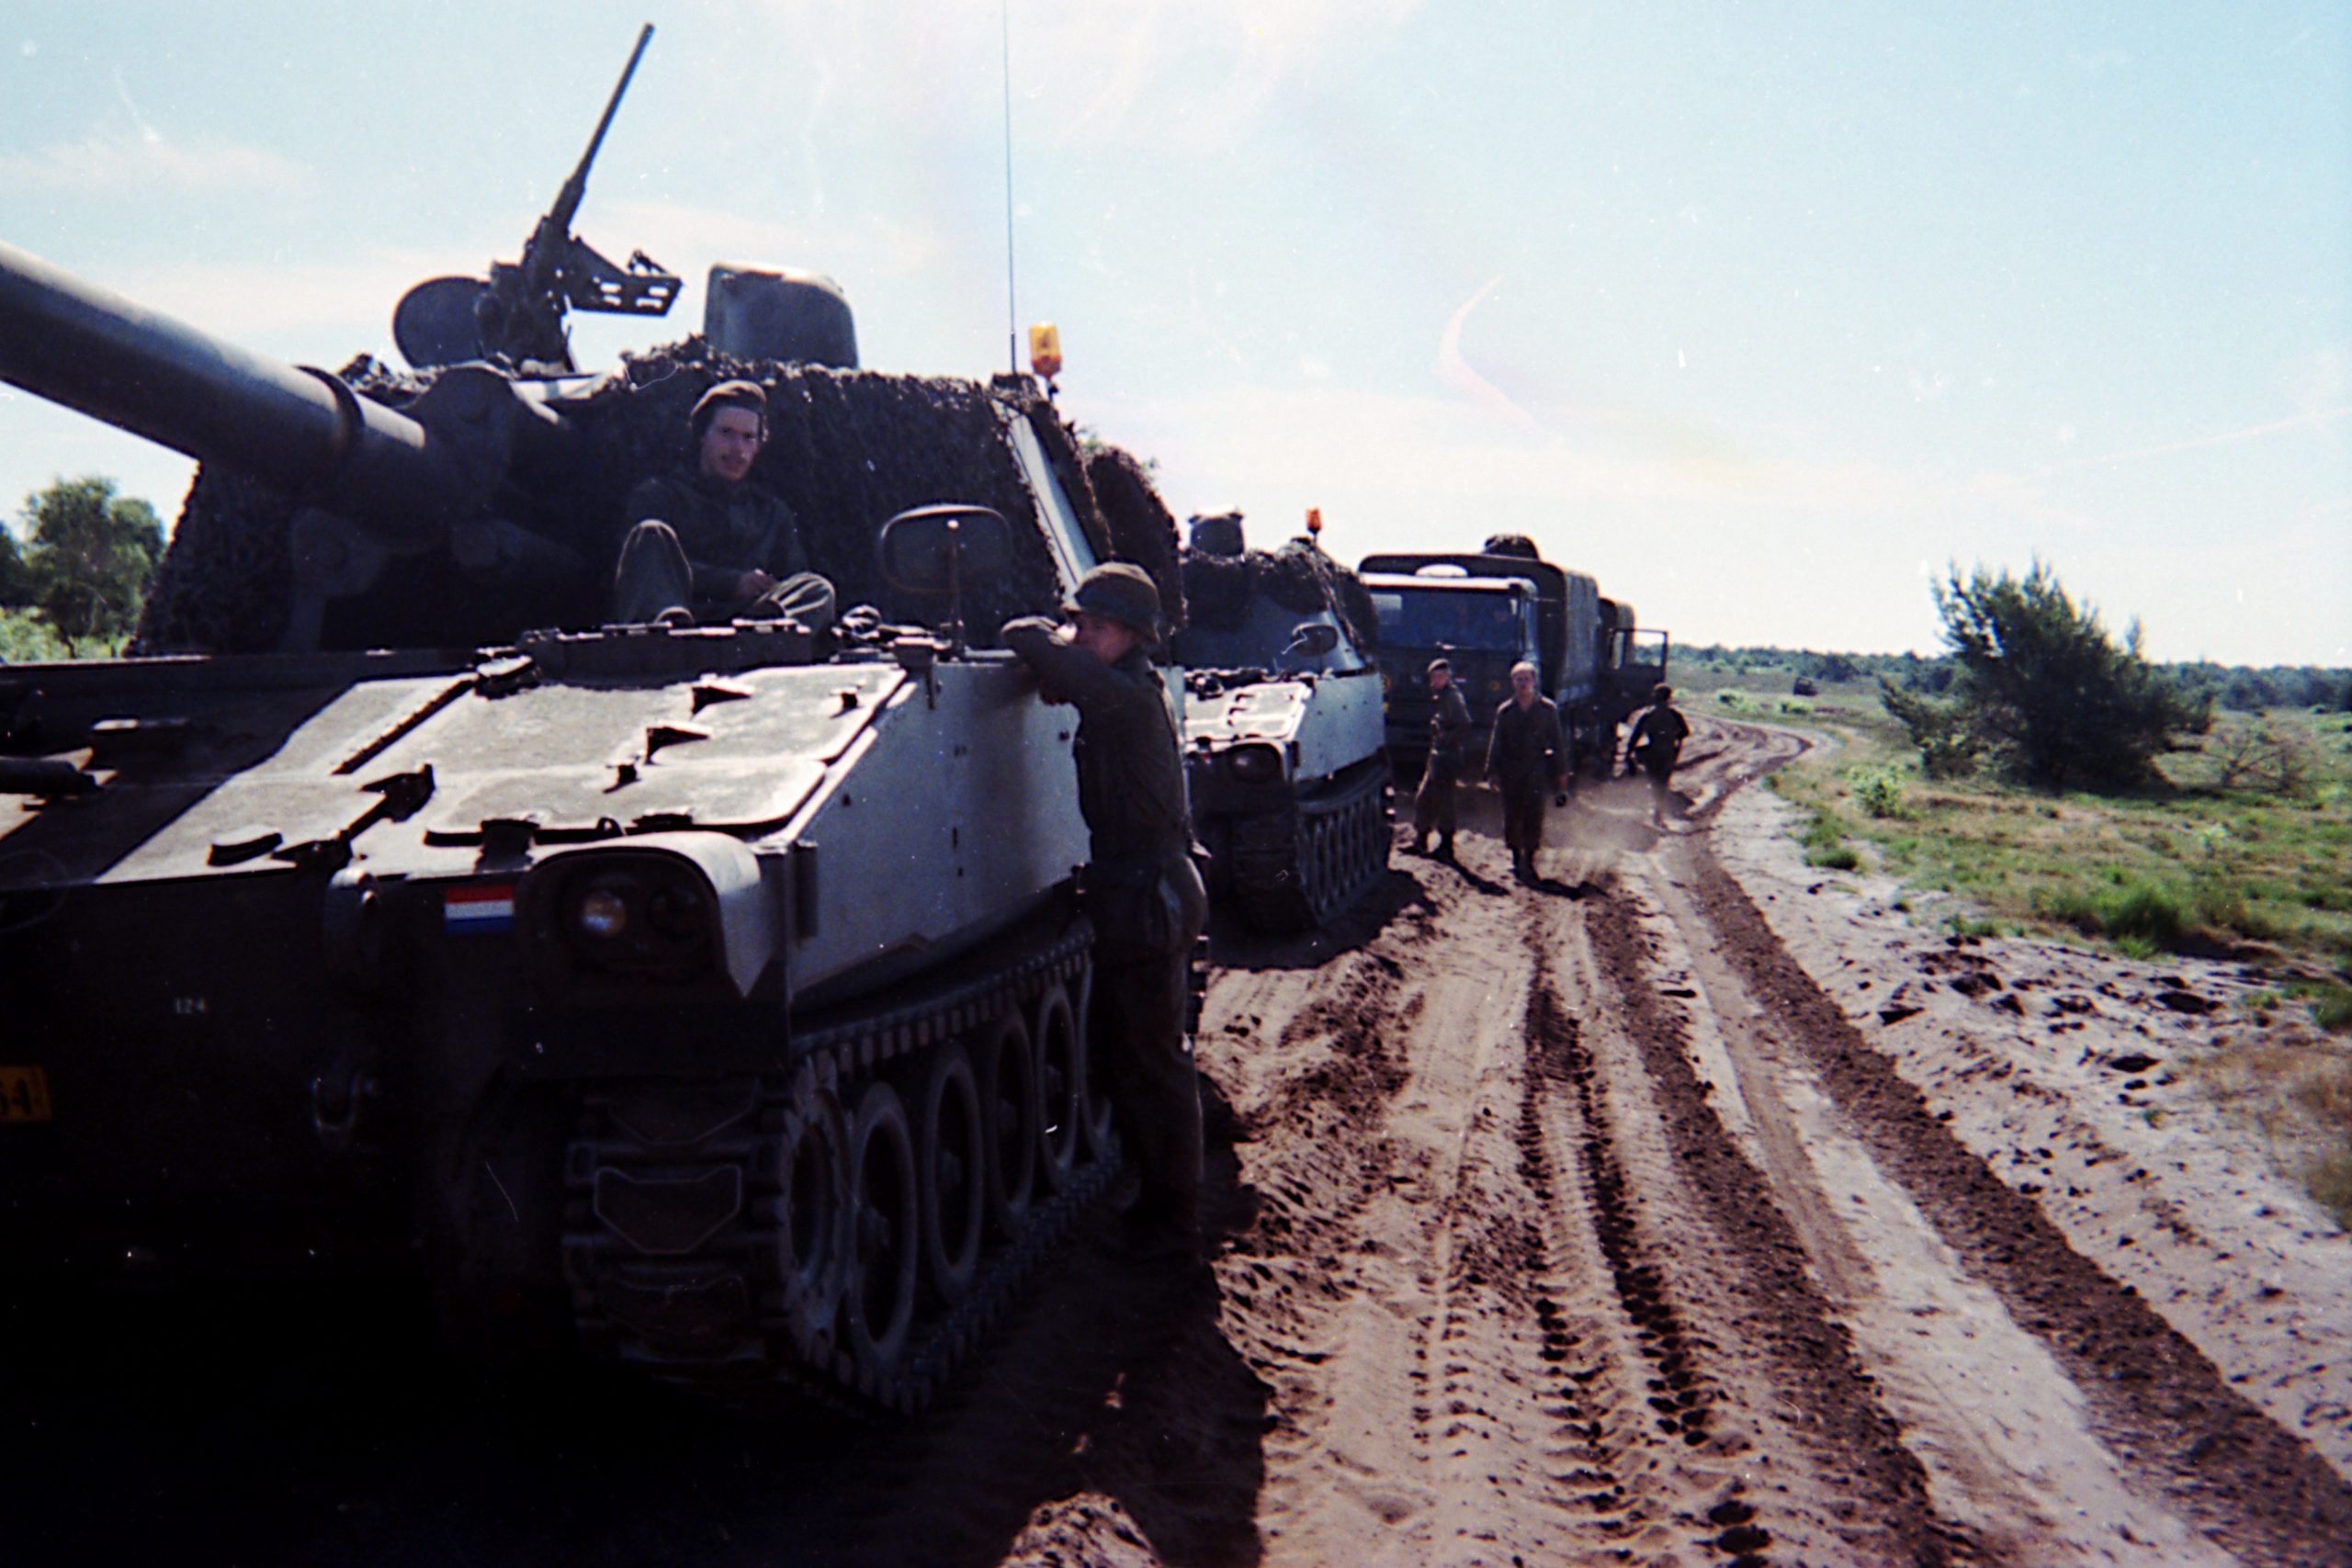 A row of M109 howitzers and trucks waiting to move on, while conscripts are milling about